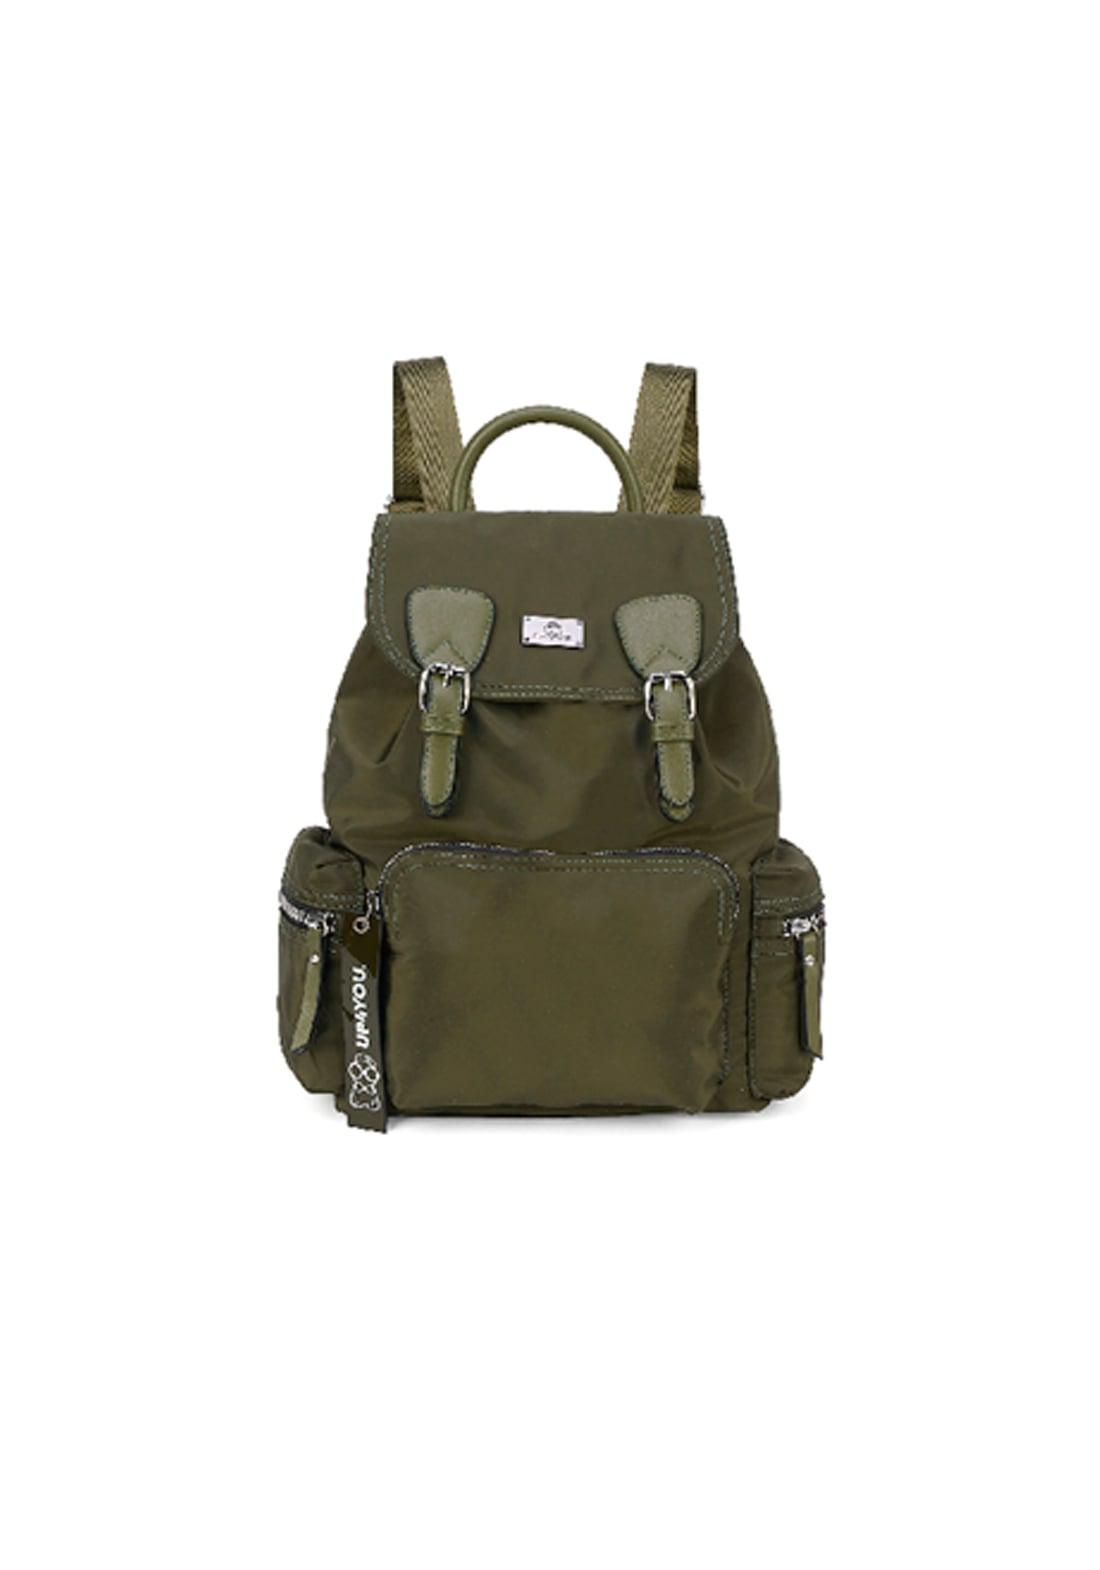 Mochila UP4YOU Fivela Aba Verde Musgo Militar Original